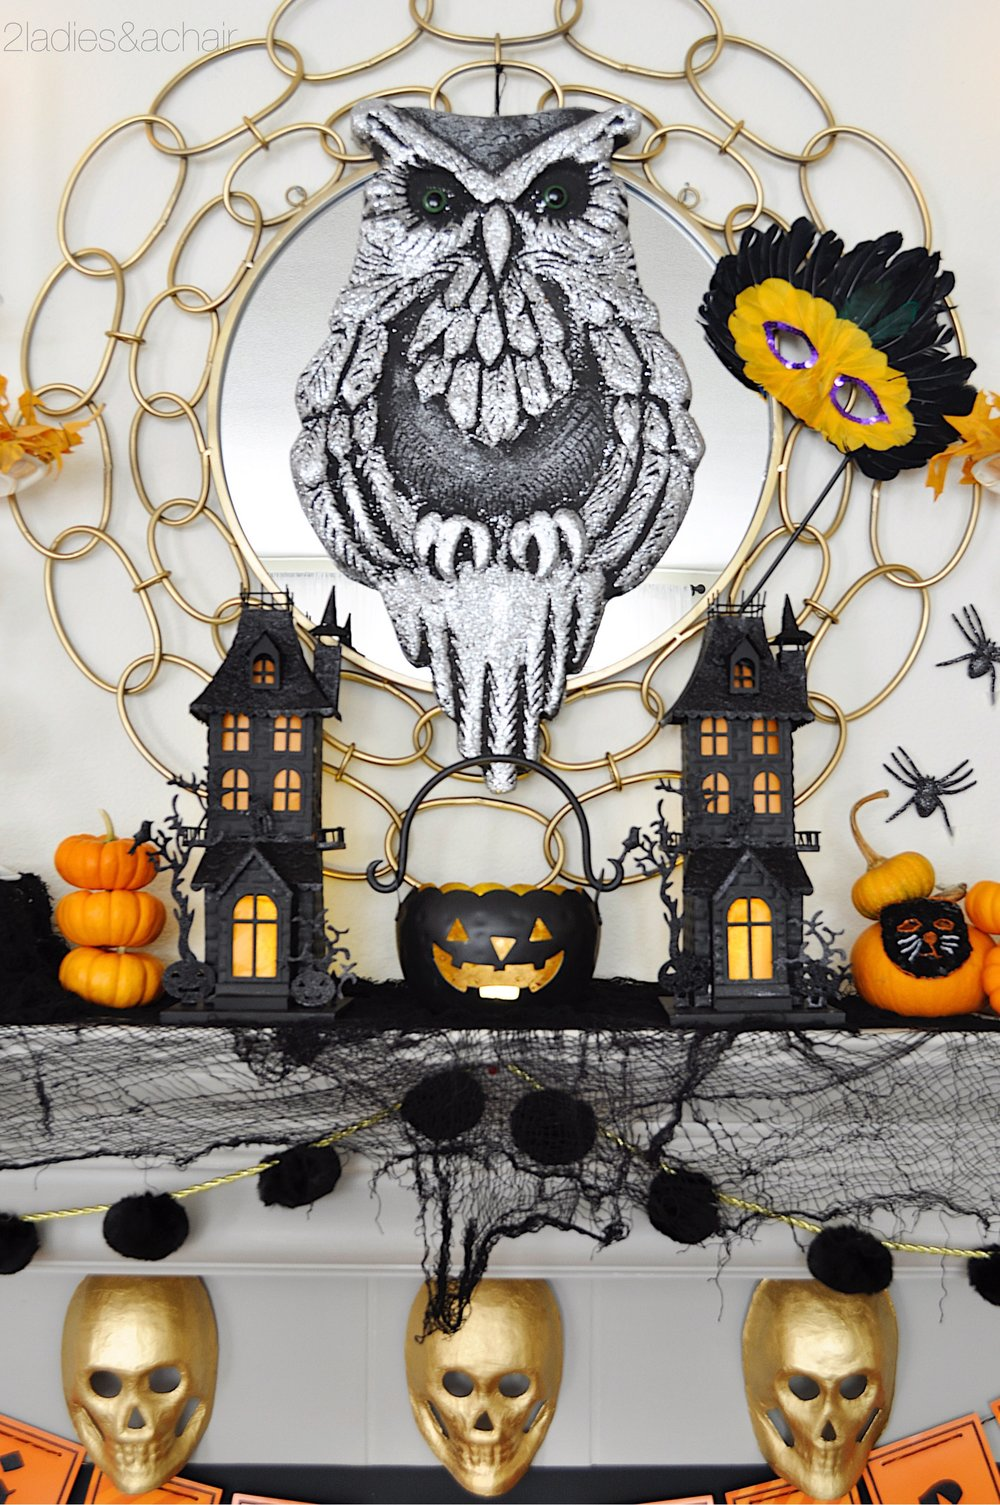 halloween mantel decorations IMG_8212.JPG